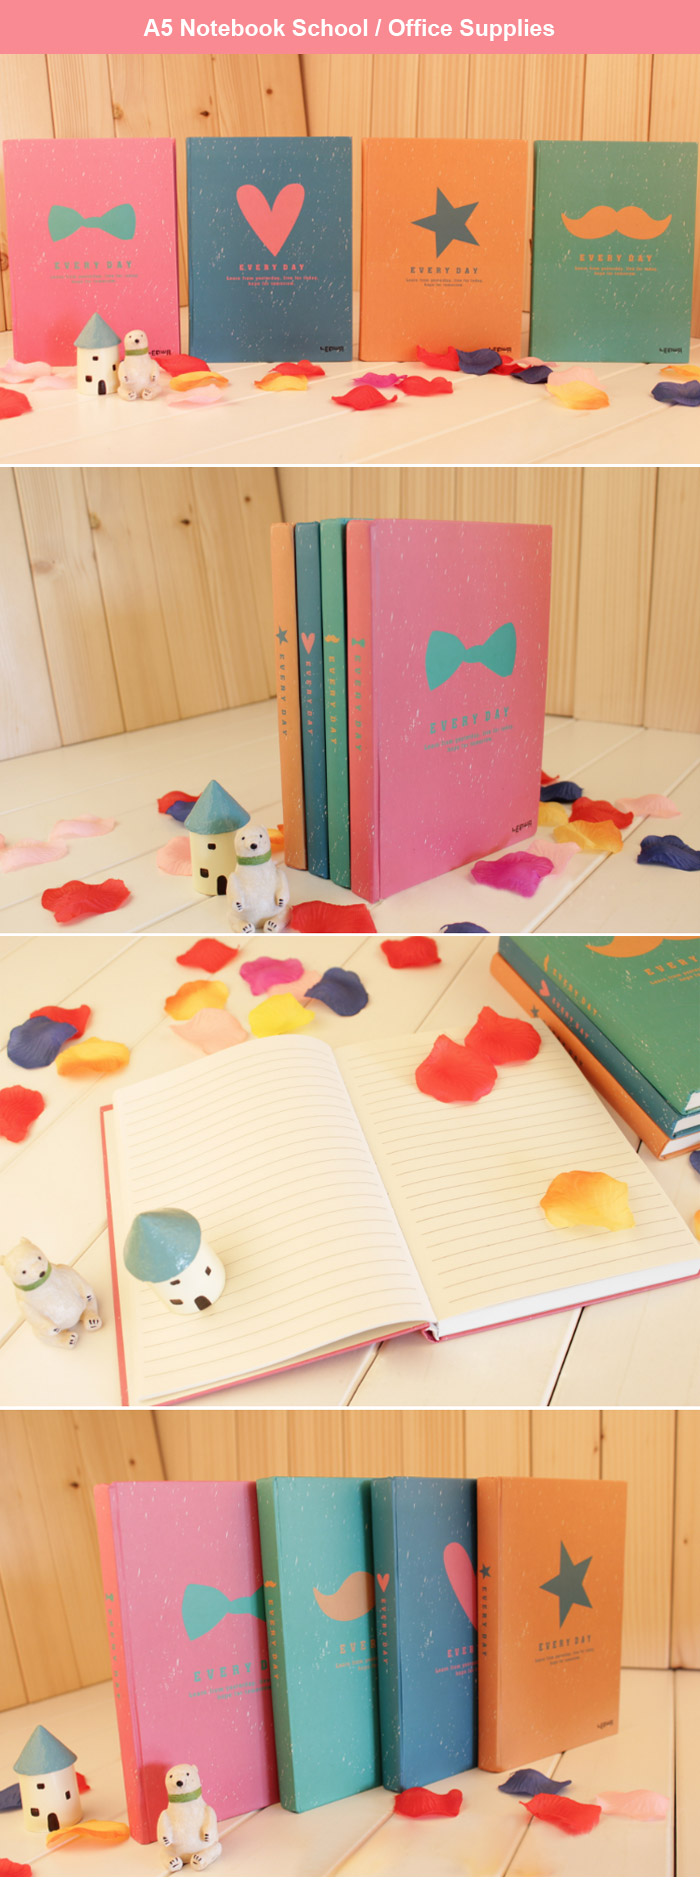 A5 Creative Note Book Notebook